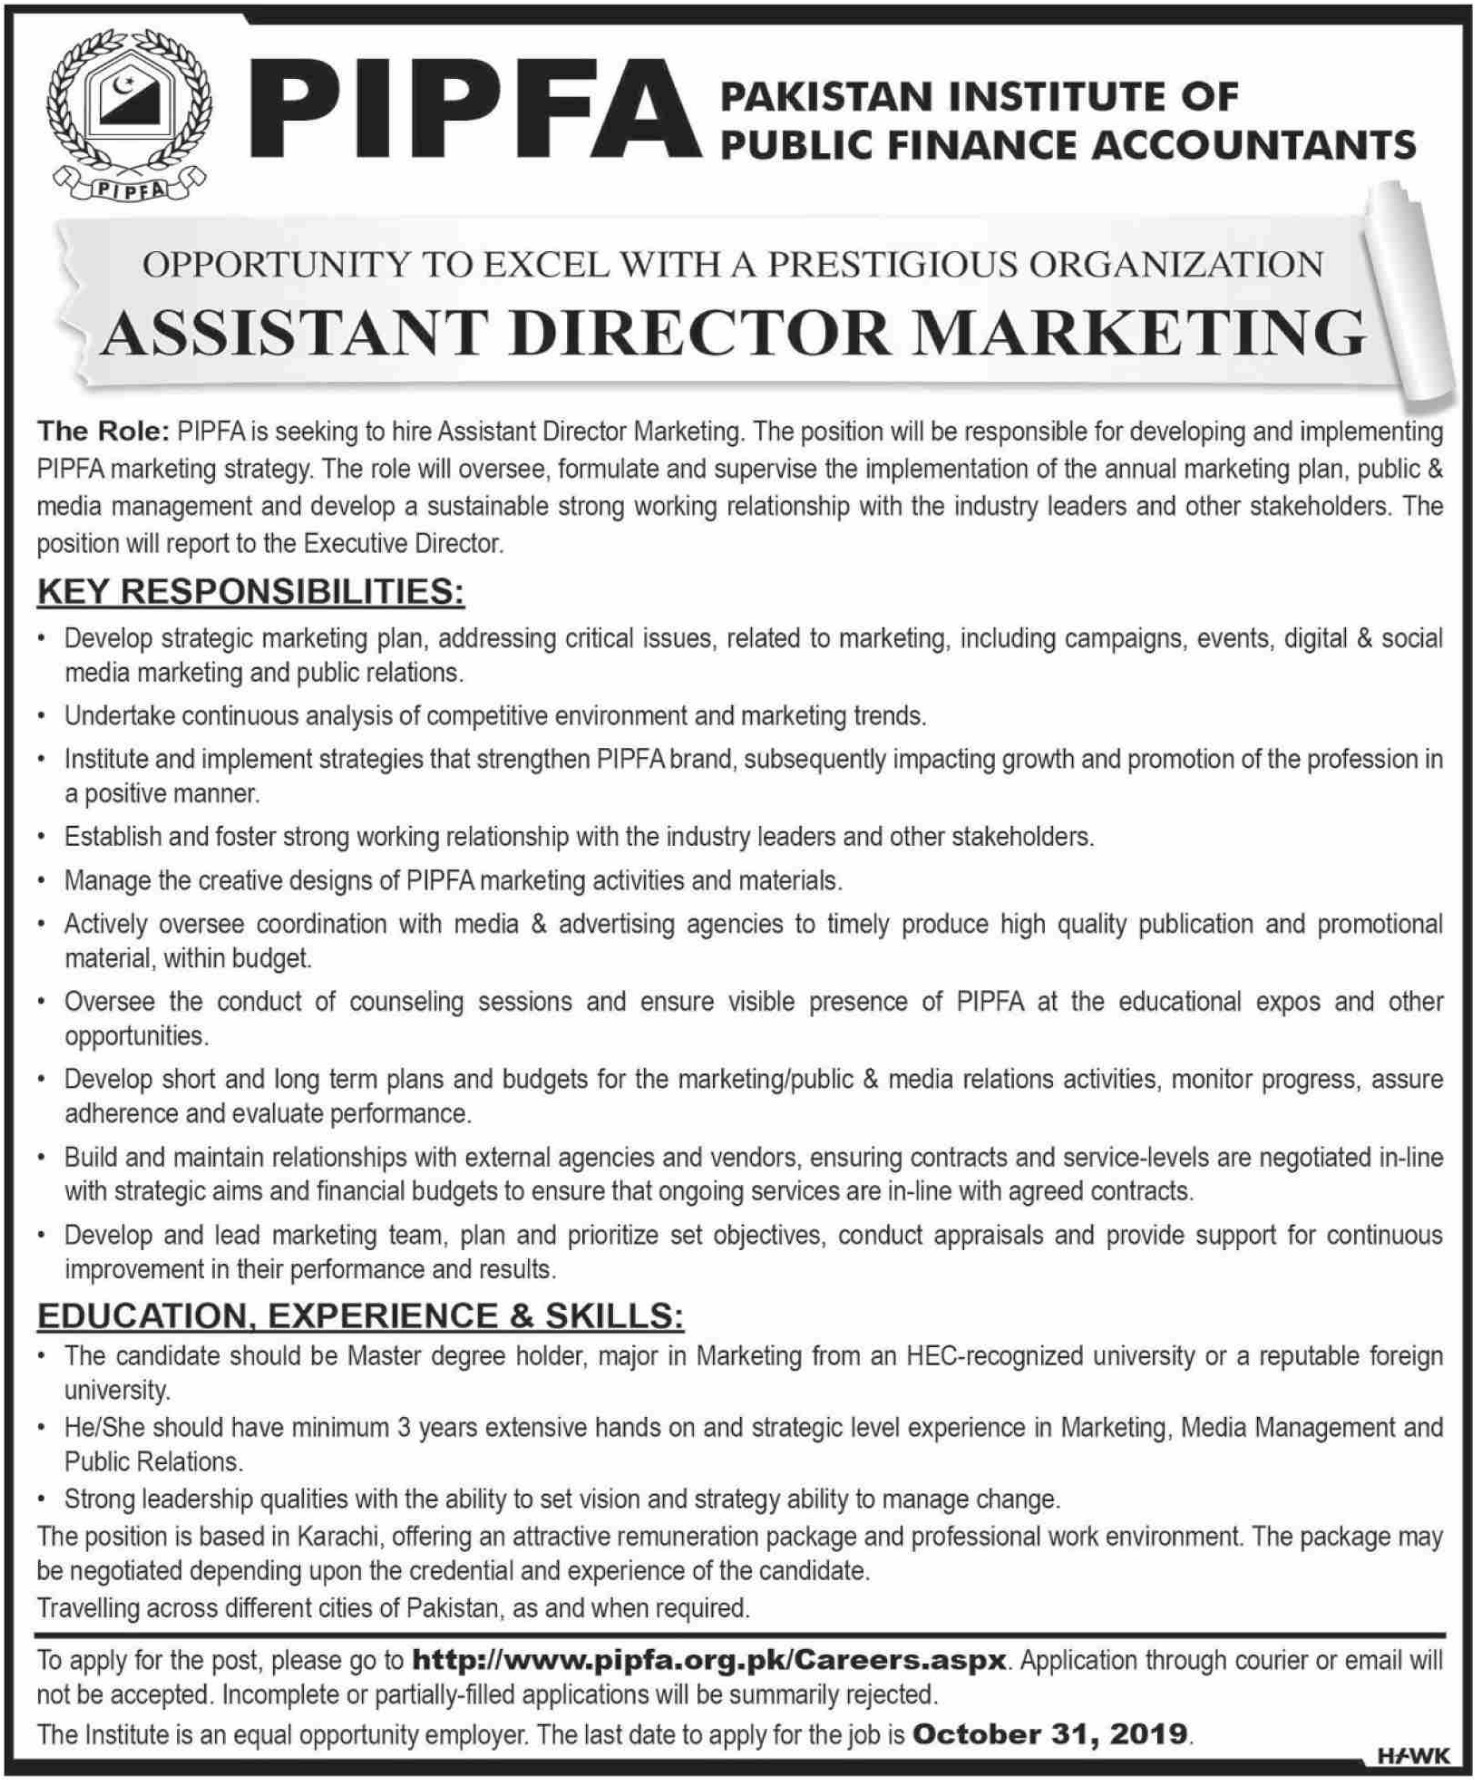 PIPFA Jobs 2019 Pakistan Institute of Public Finance Accountants